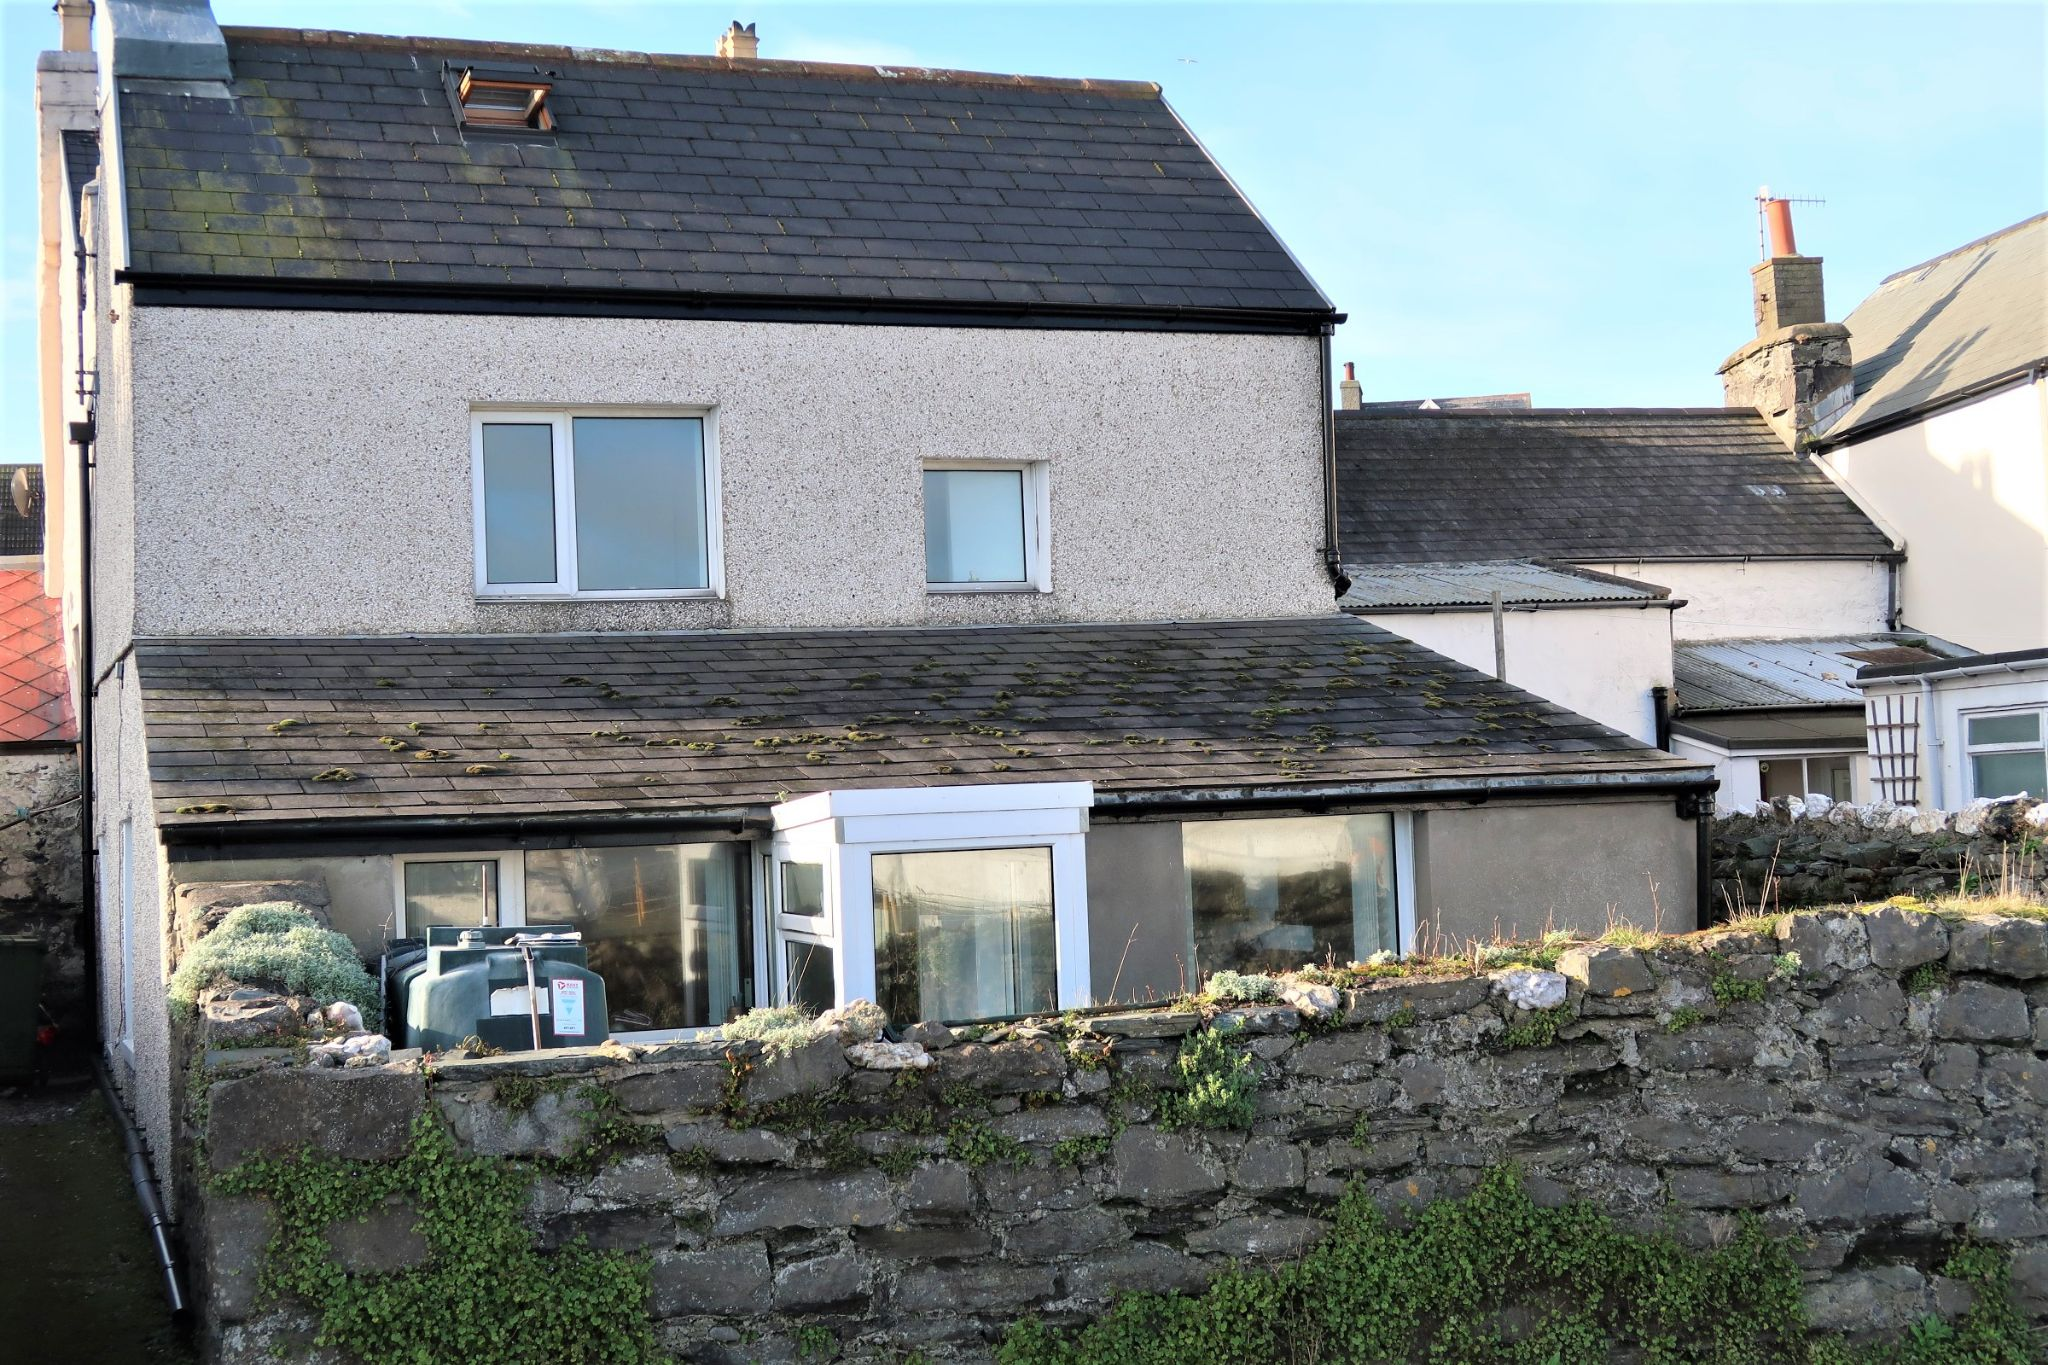 2 bedroom semi-detached house Sold in Port St Mary - Photograph 3